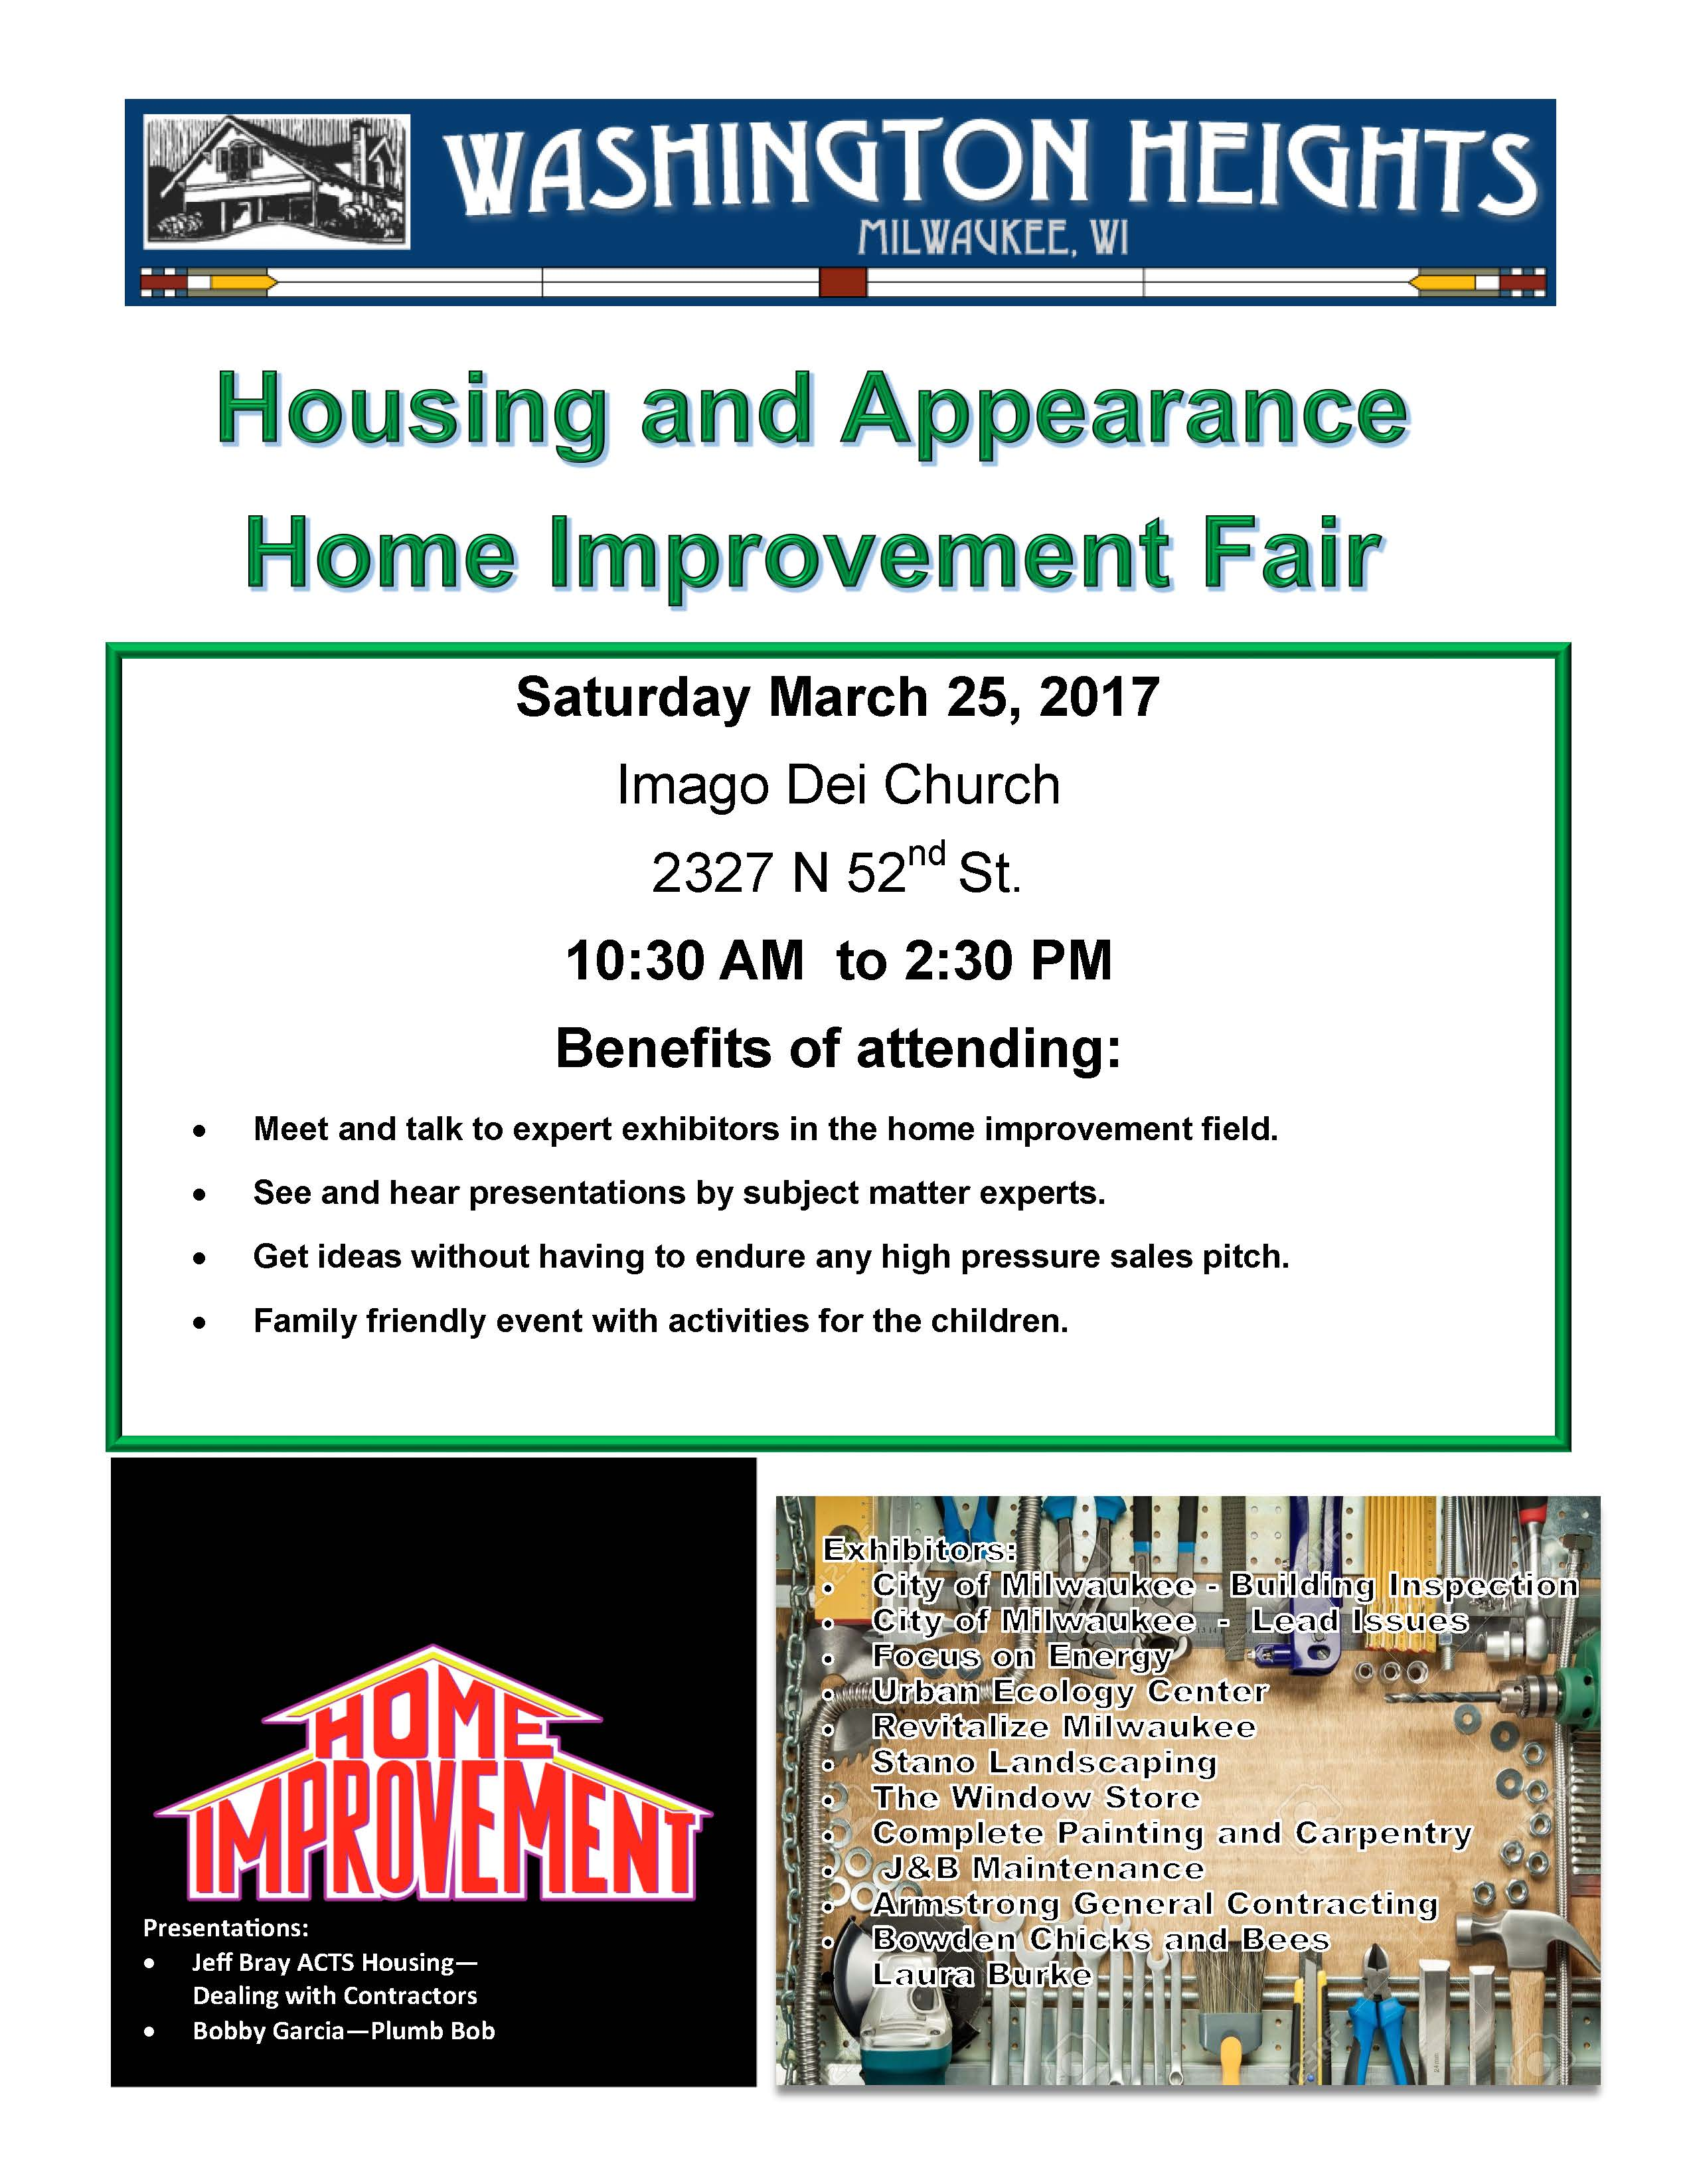 Home-Improvement-Fair-Promotion-2017-v3-3-8-17.jpg